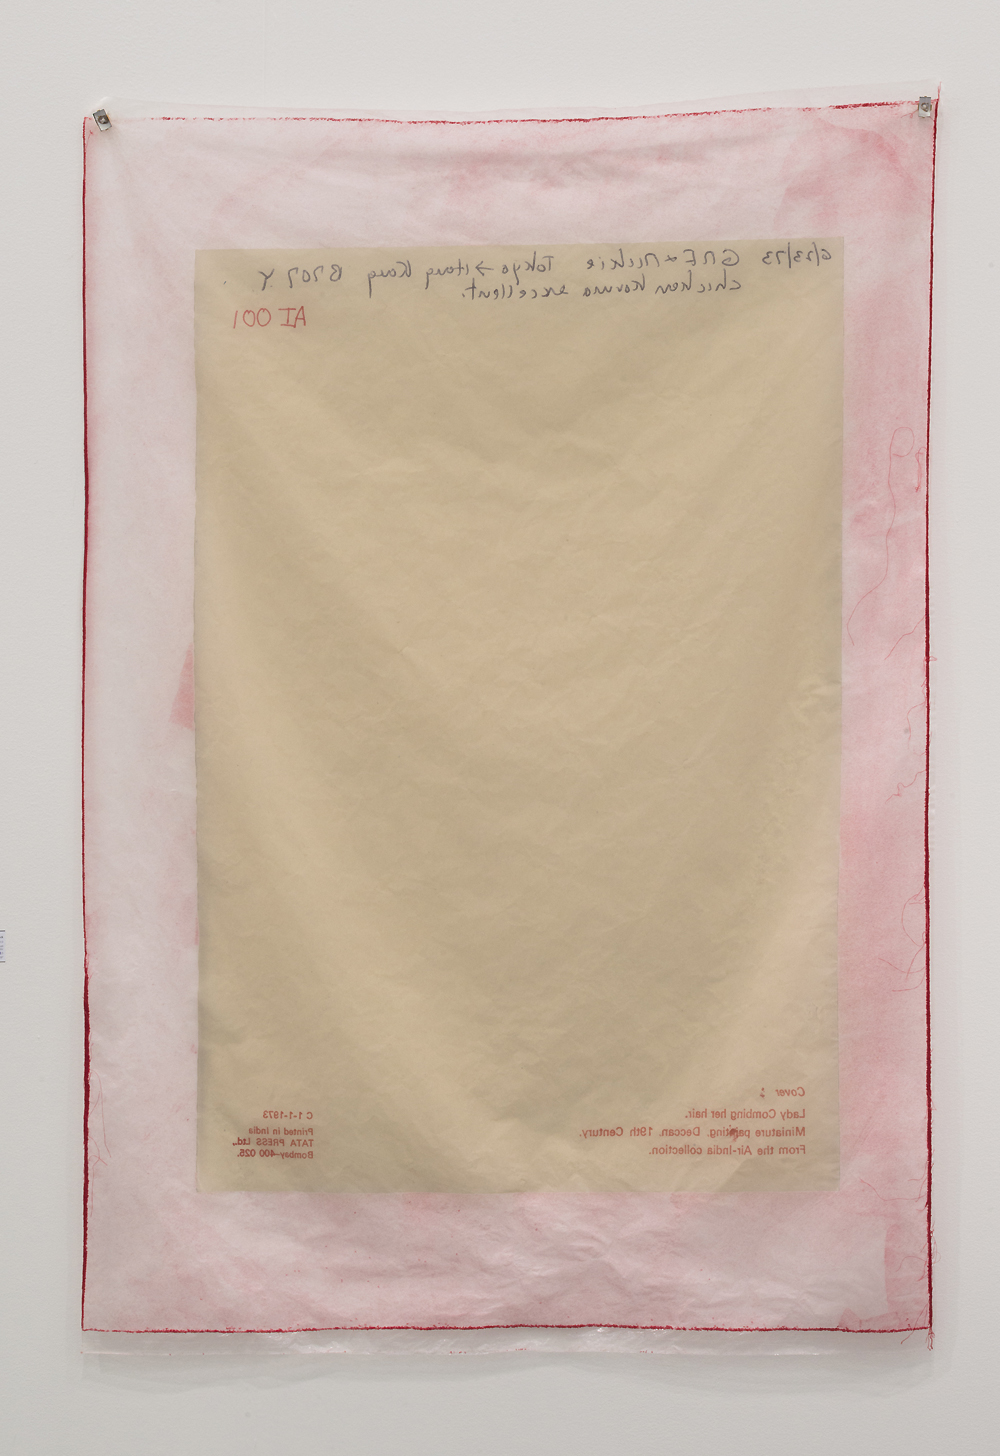 Valerie Snobeck / Catherine Sullivan,  Limited Good 1,  2013, peeled print and upholstery fabric on plastic, cufflinks, edition of 3, 56.5 x 39 inch